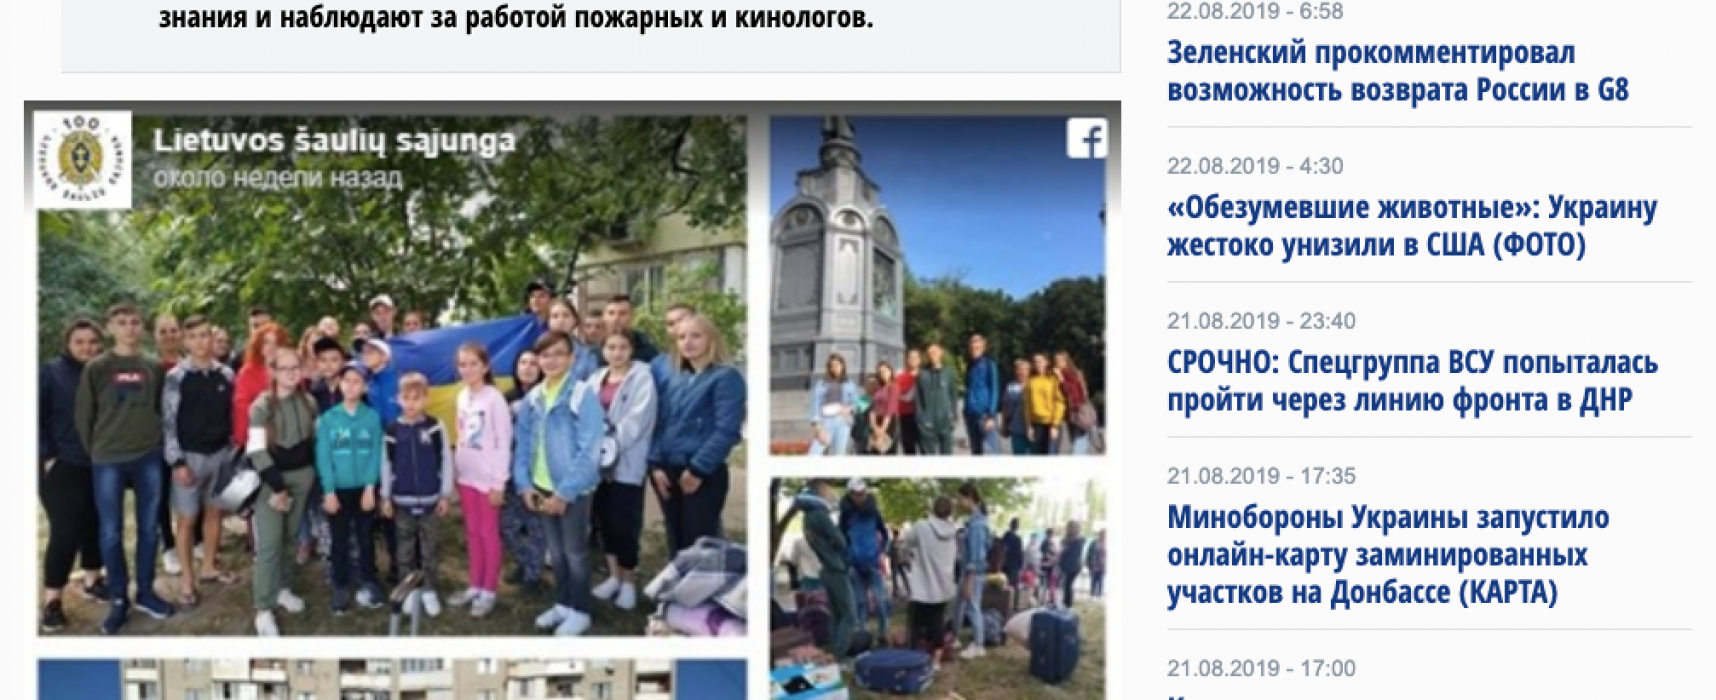 Fake: Lithuania Teaches War to Ukrainian Children